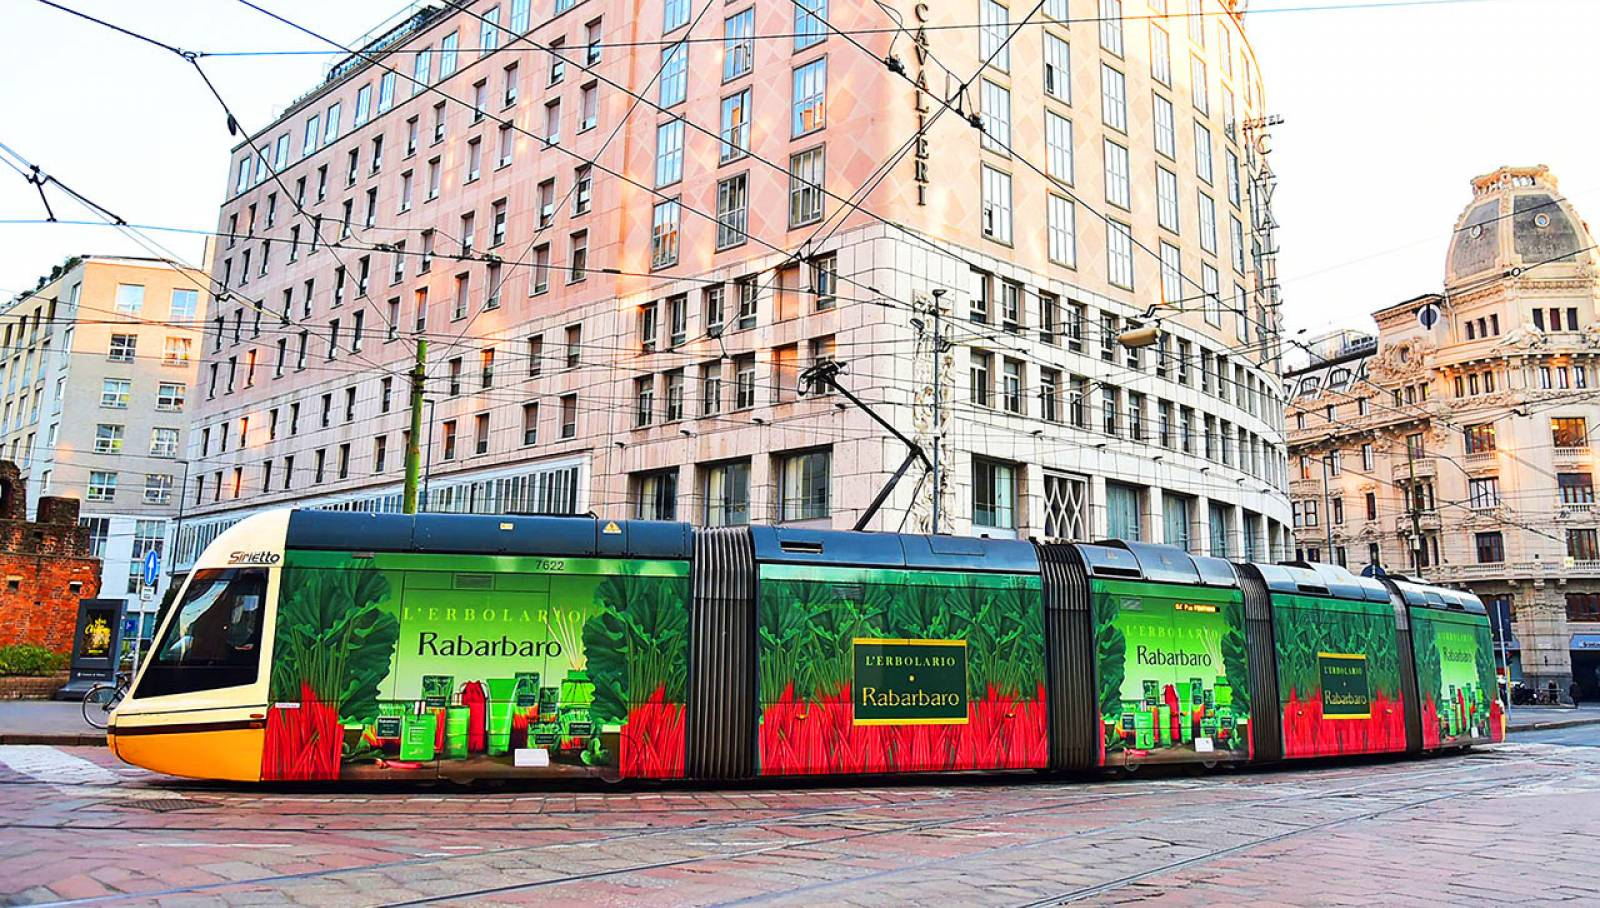 Wrapped Vehicles in Milan IGPDecaux decorated tram for L'Erbolario